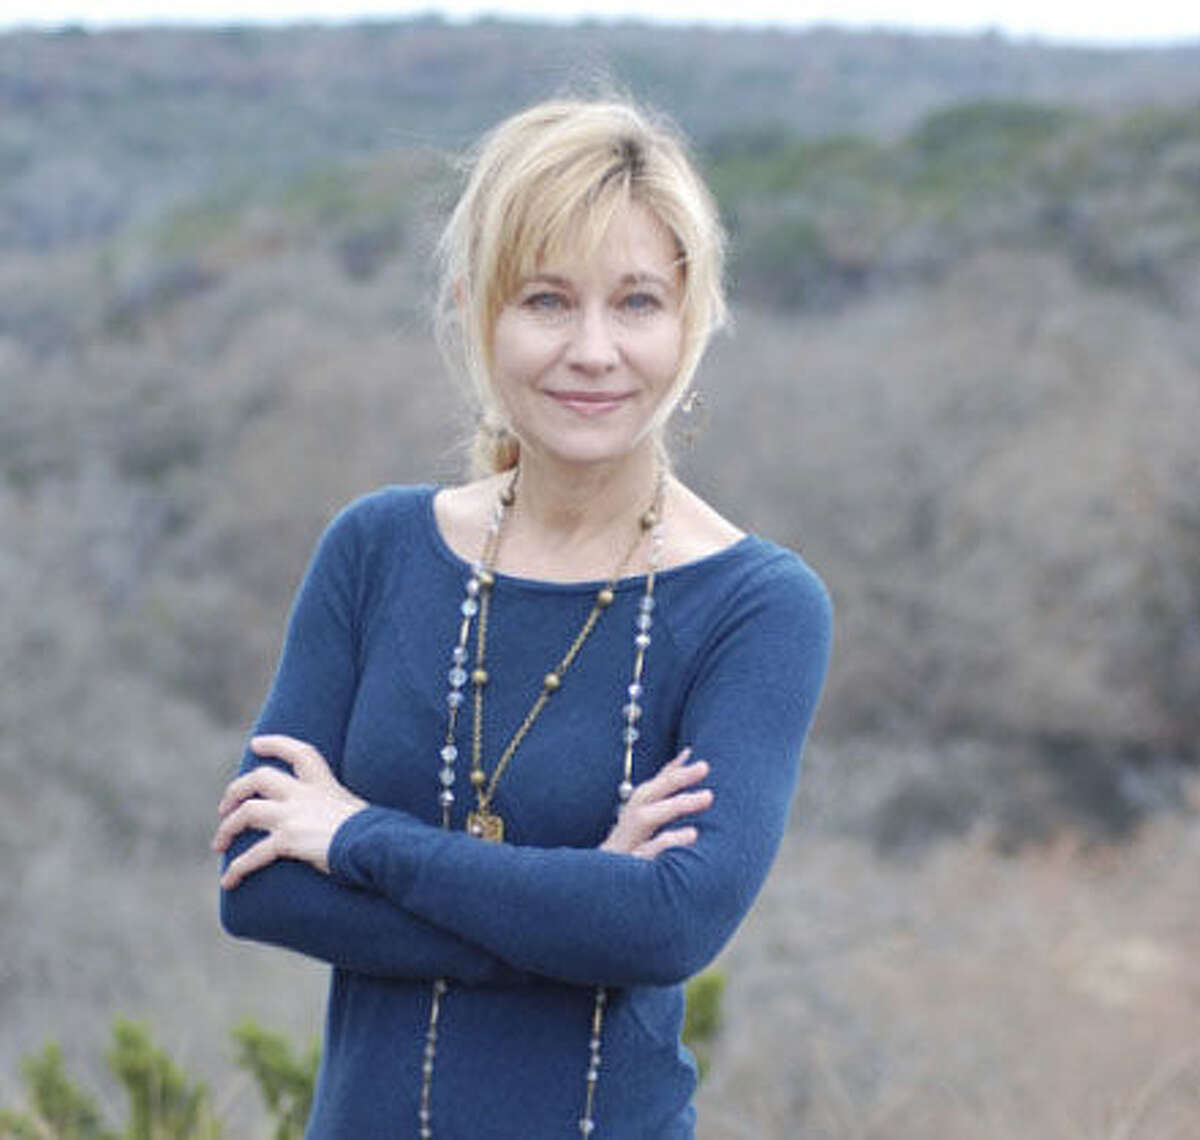 Elizabeth Crook weaves moments in a life traumatized by the UT-Tower shootings. Crook's descriptions of life's messiness and the Texas geography take center stage, post-shootings.